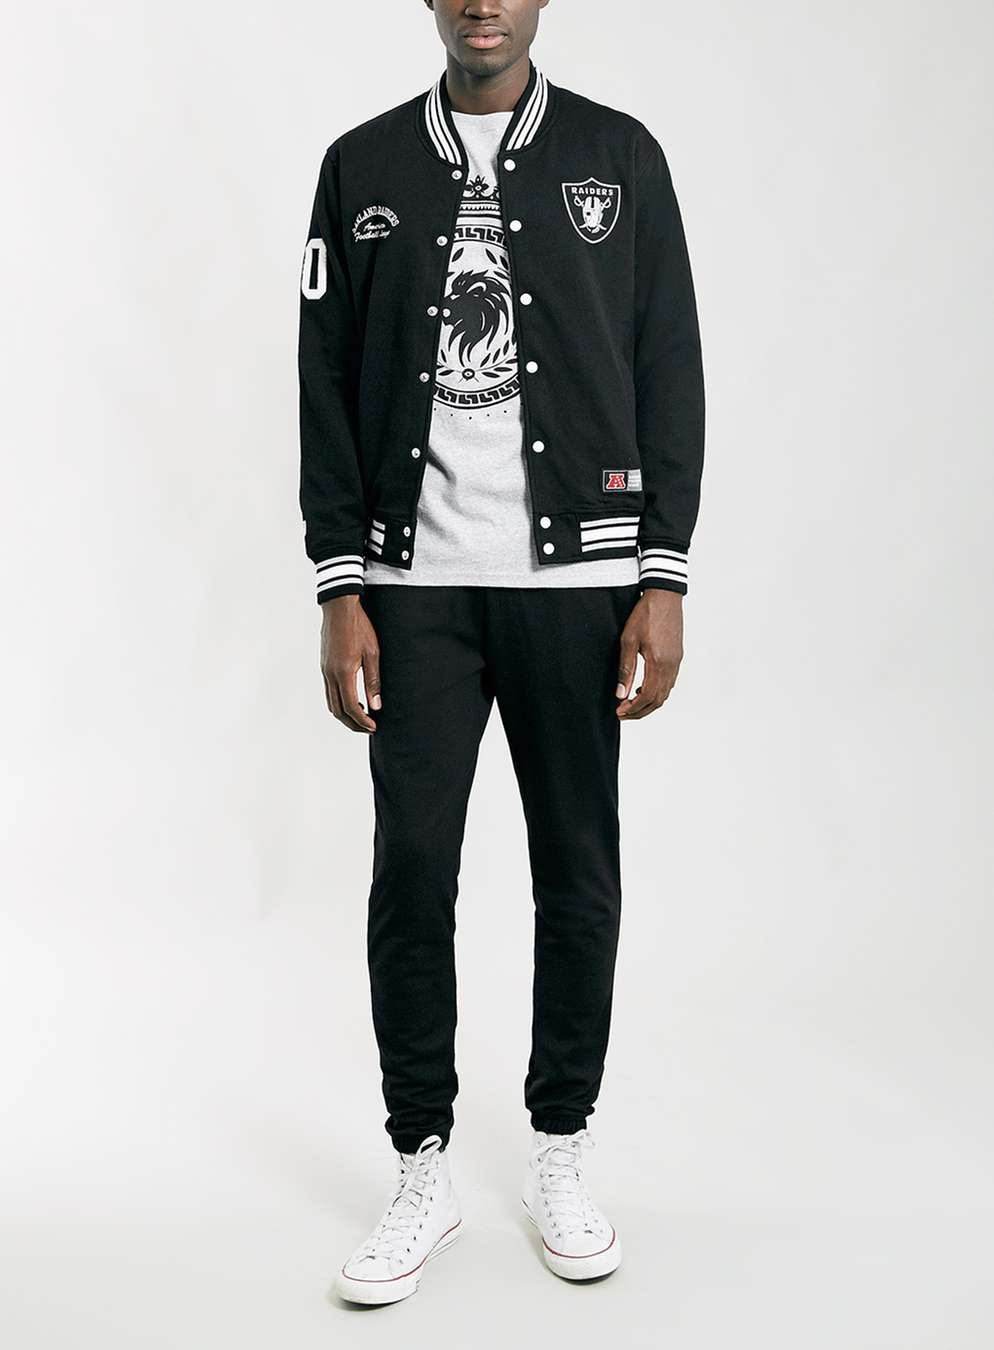 Raider Hoodies | Raiders Letterman Jacket | Oakland Raiders Sweaters